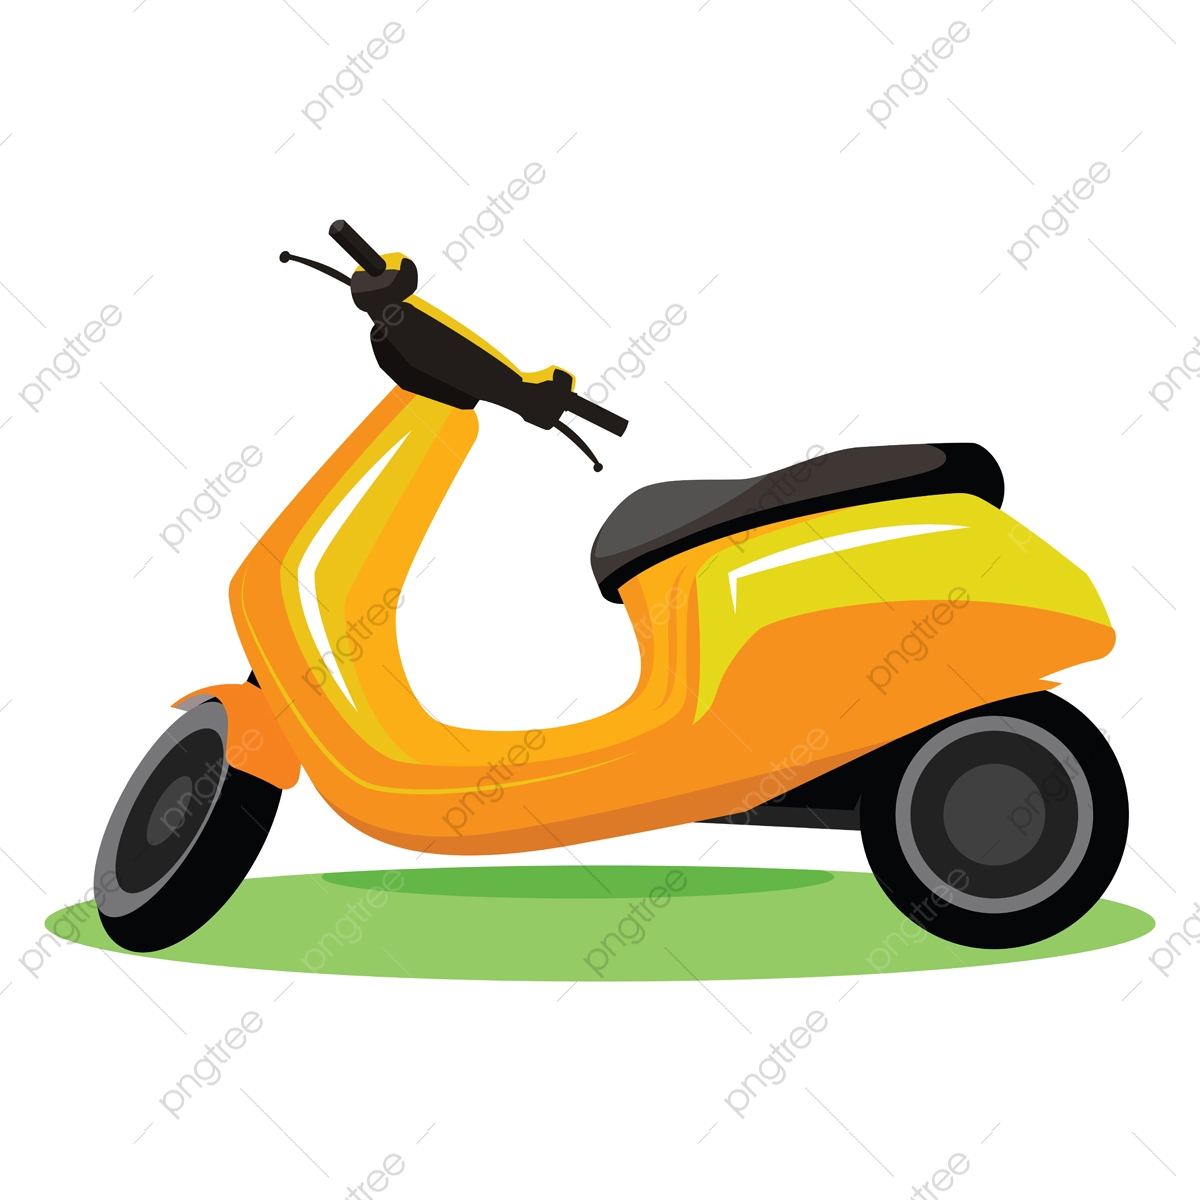 yellow modern scooter vector illustration on white background vector scooter motorcycle png and vector with transparent background for free download https pngtree com freepng yellow modern scooter vector illustration on white background 5296482 html